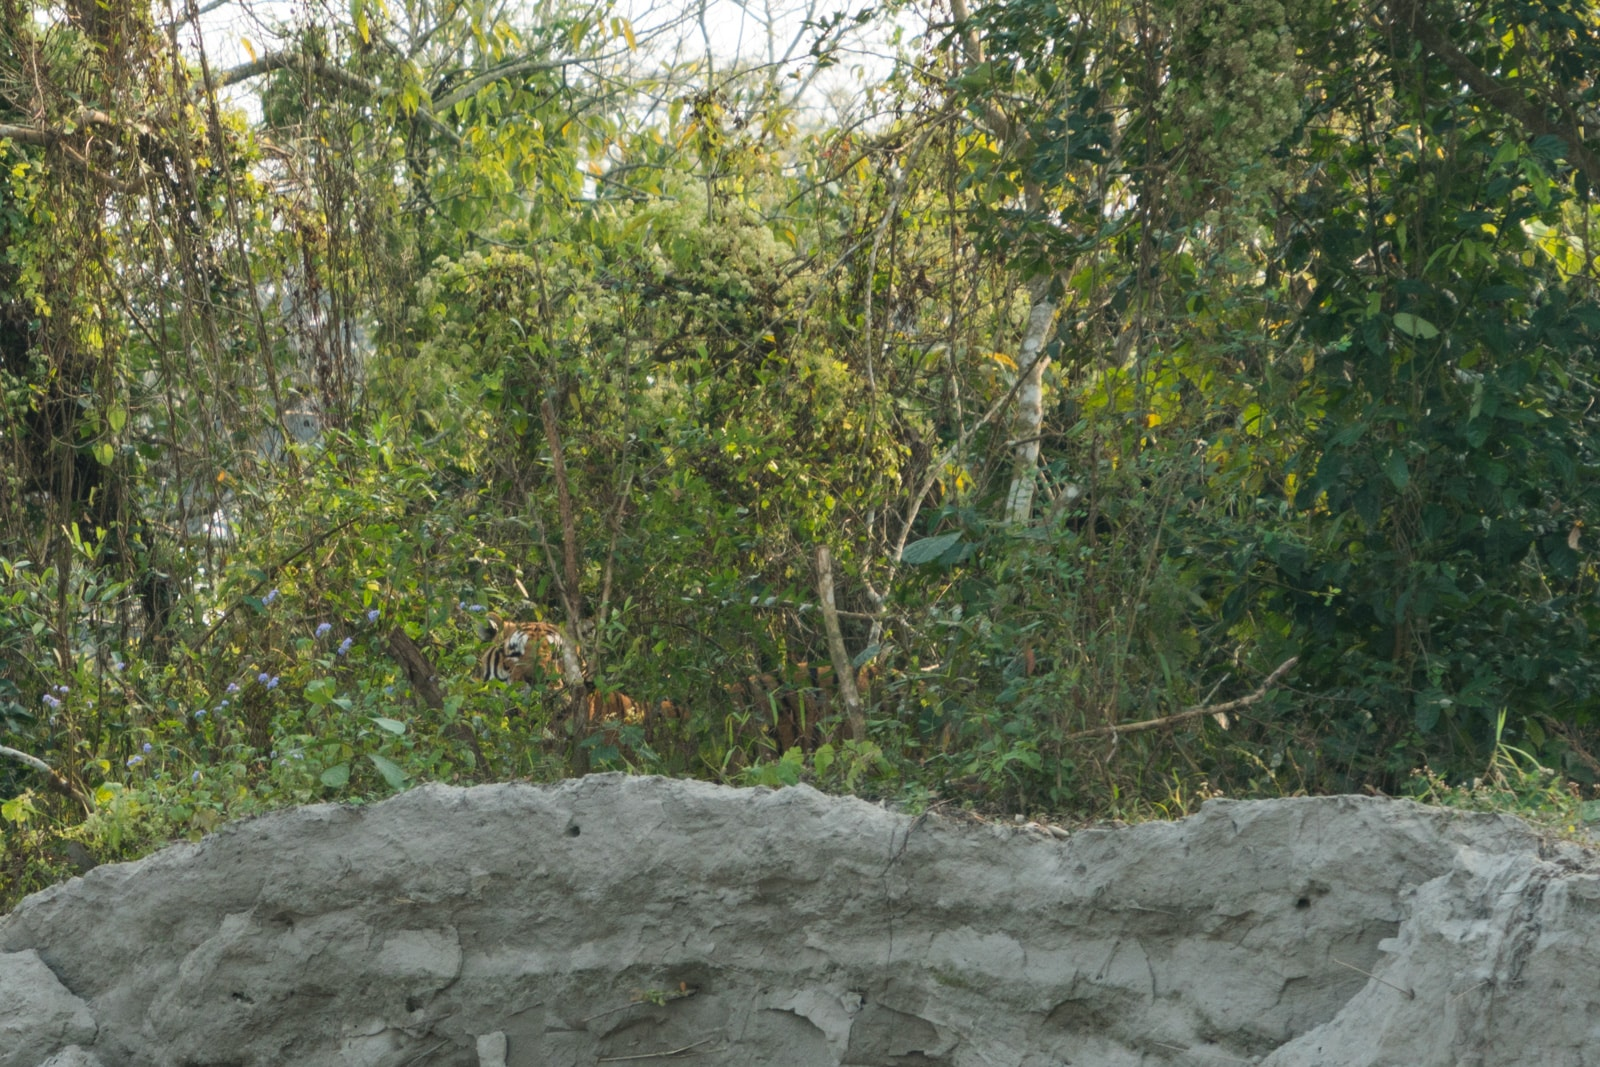 Review of Assam Bengal Navigation - Bengal tiger in Kaziranga National Park - Lost With Purpose travel blog